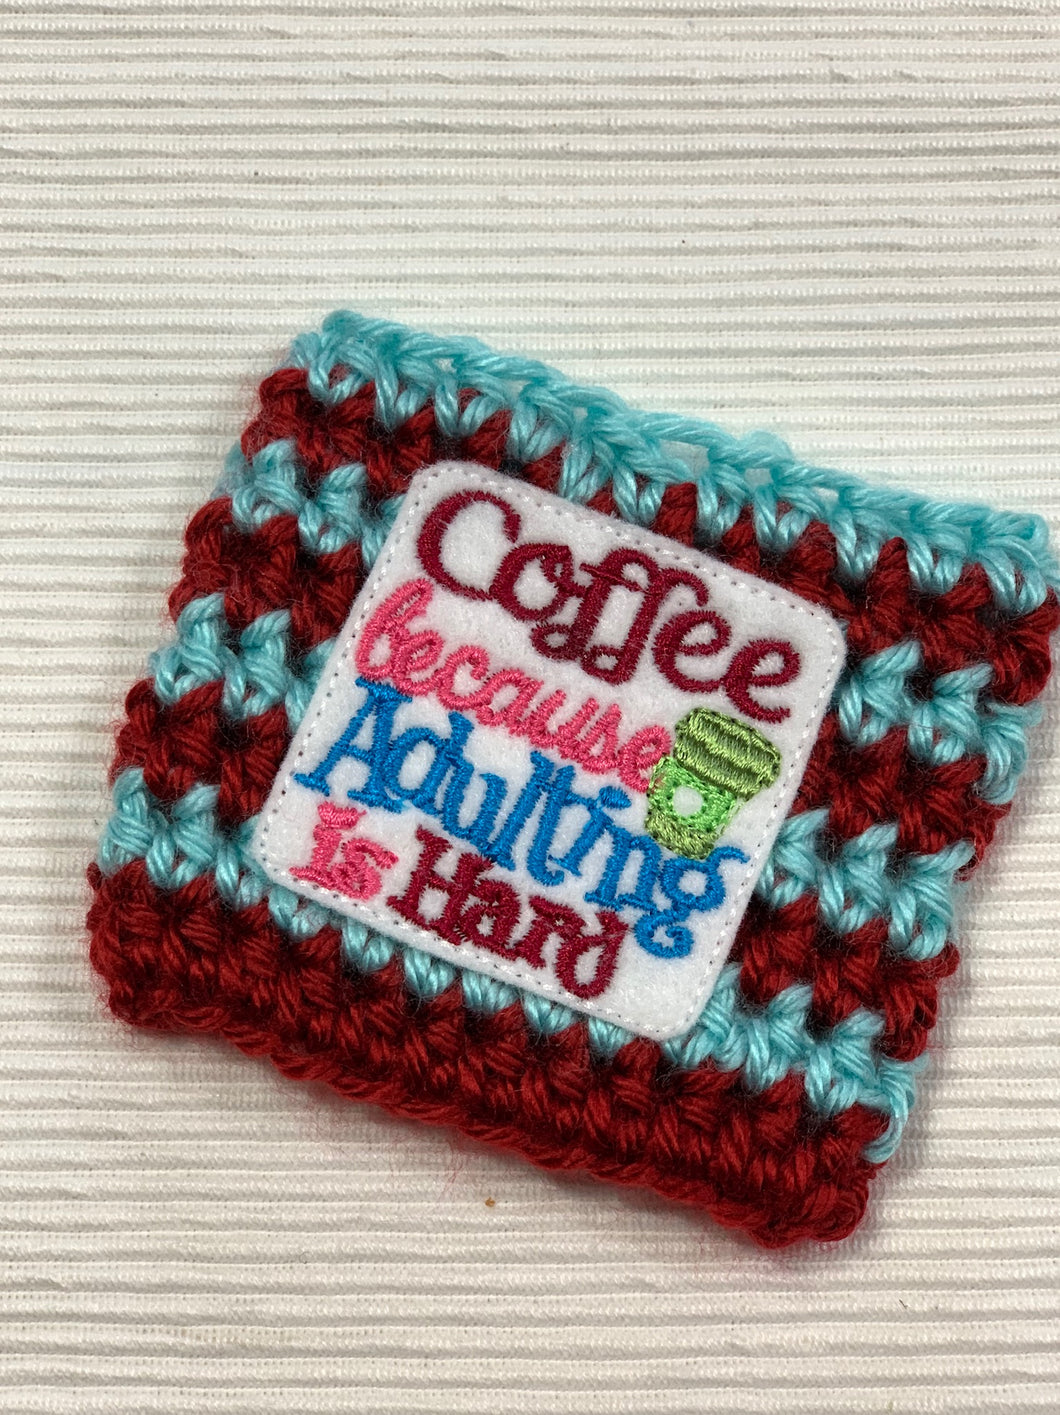 Coffee Because Adulting is Hard Blue and Maroon Reusable Eco-Friendly Hot and Cold Beverage Cup Cozy